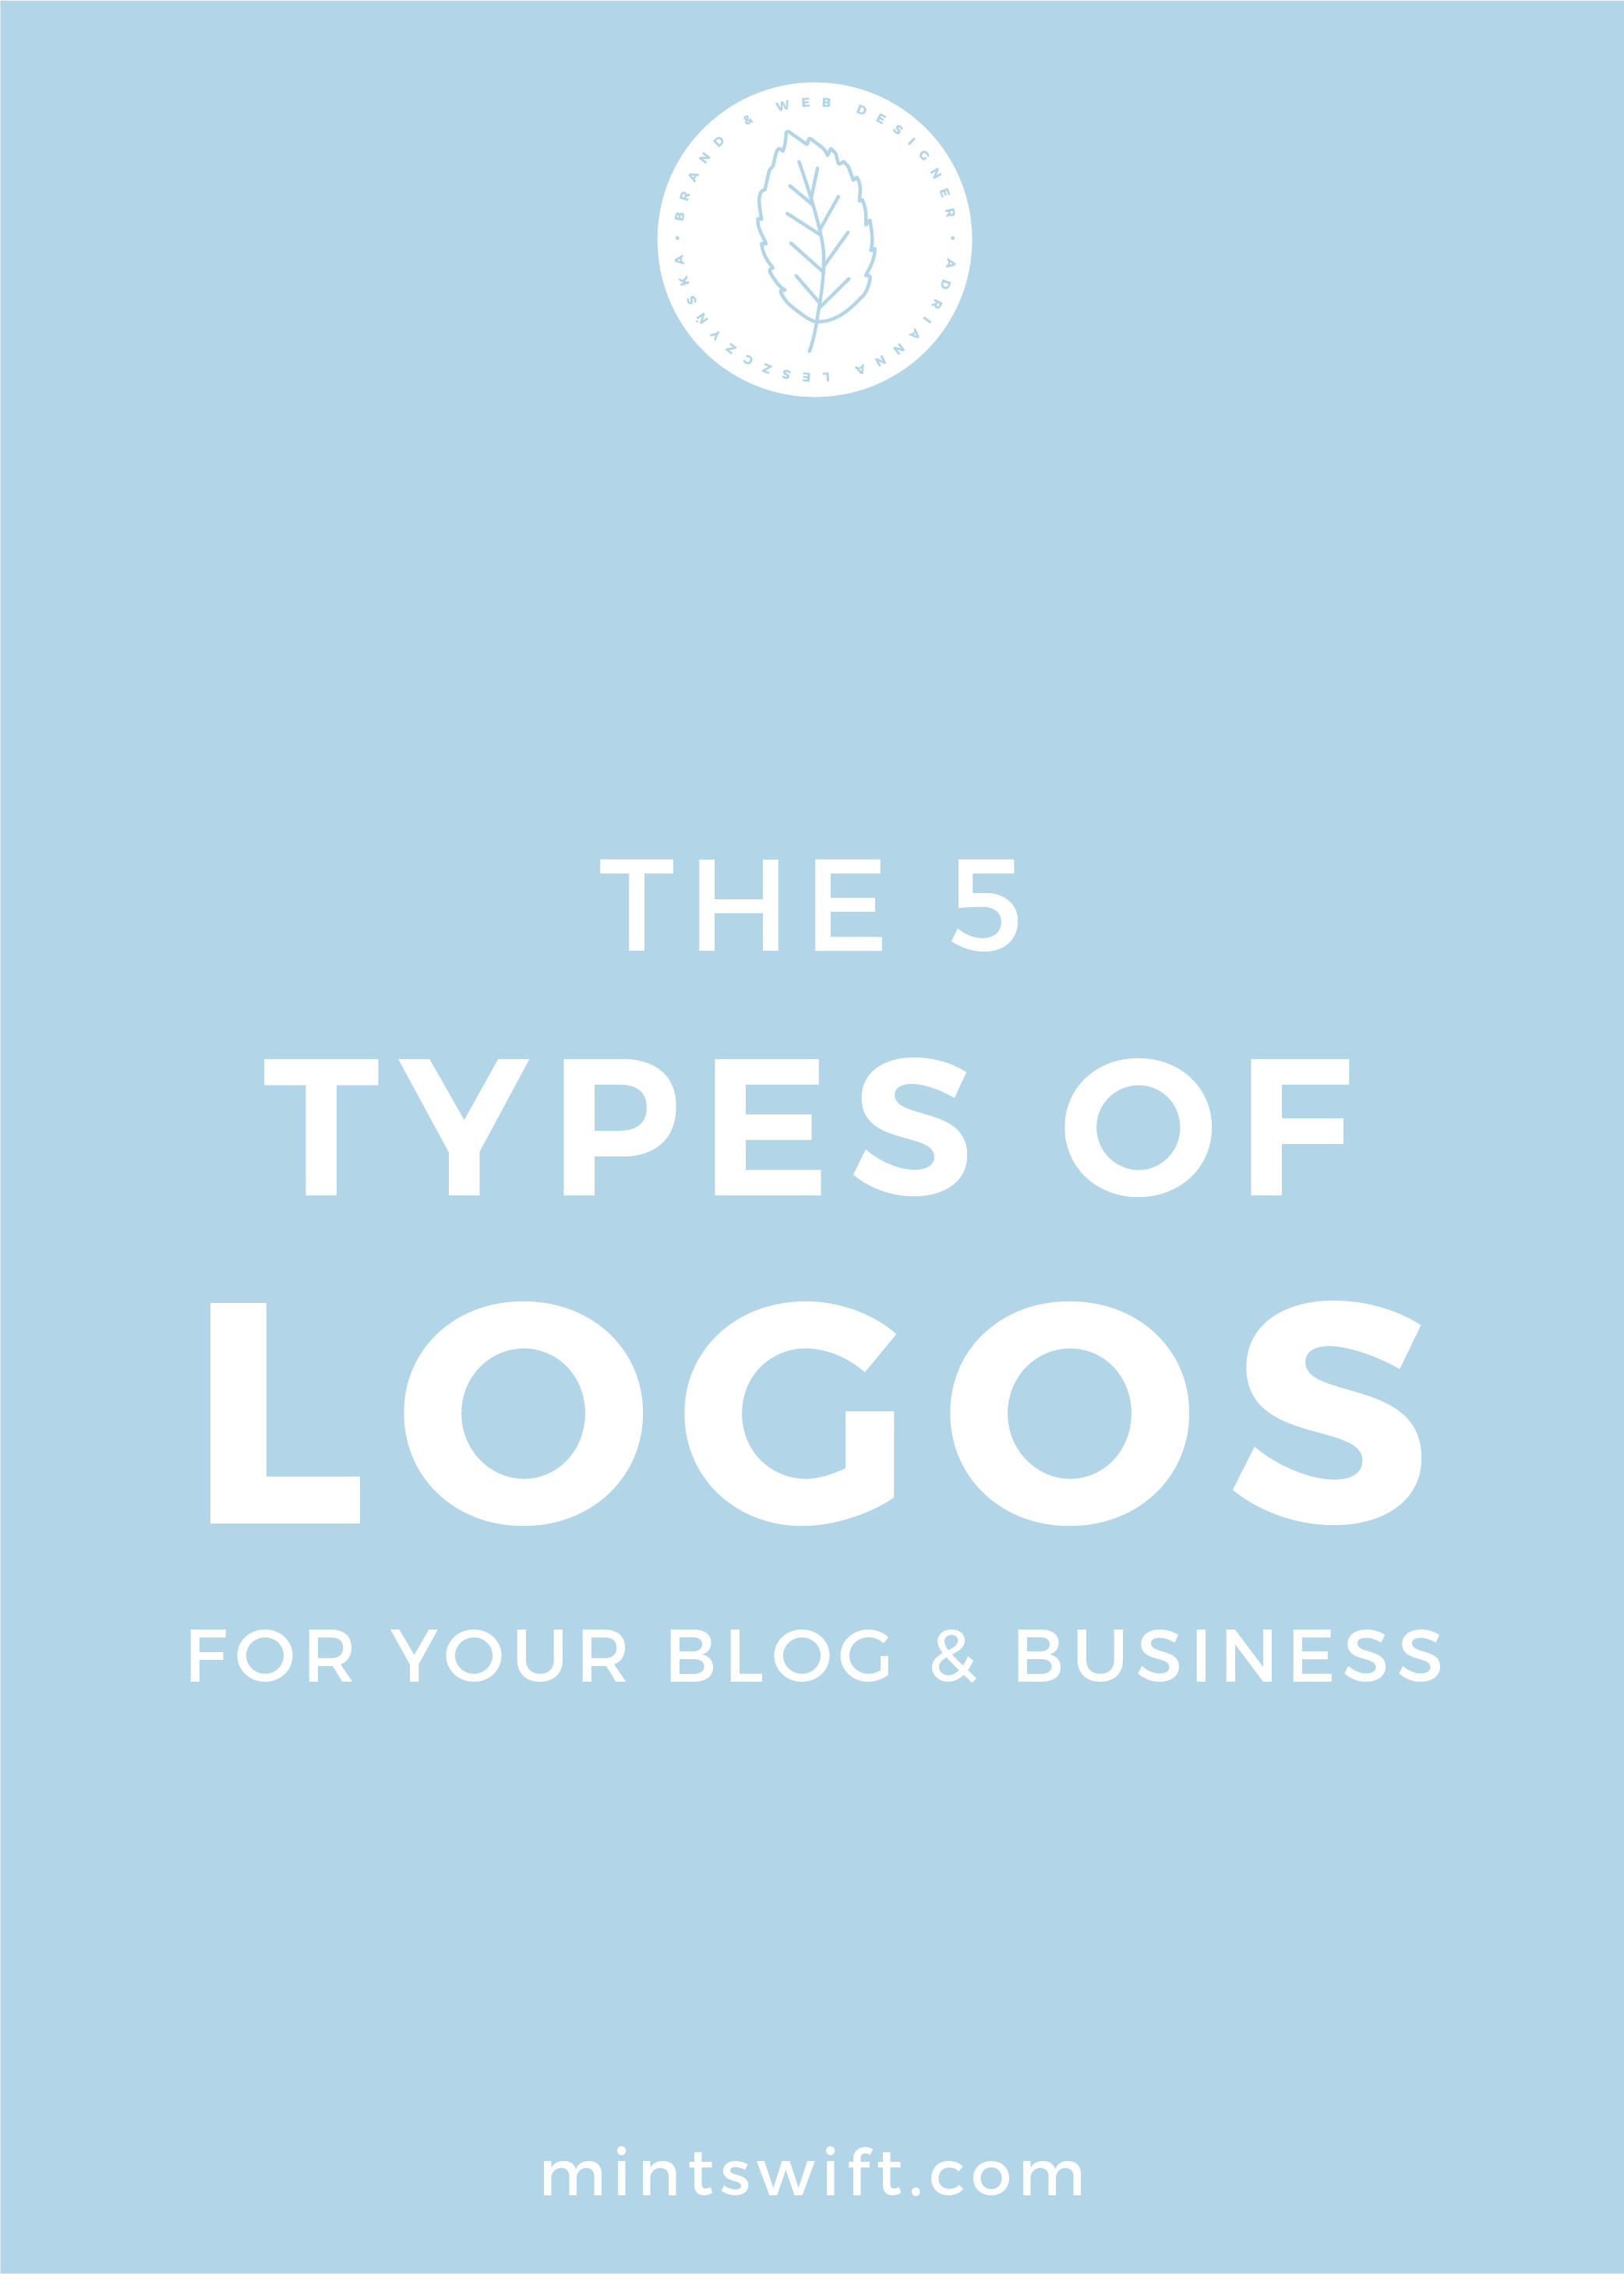 The 5 Types of Logos for Your Blog & Business - MintSwift